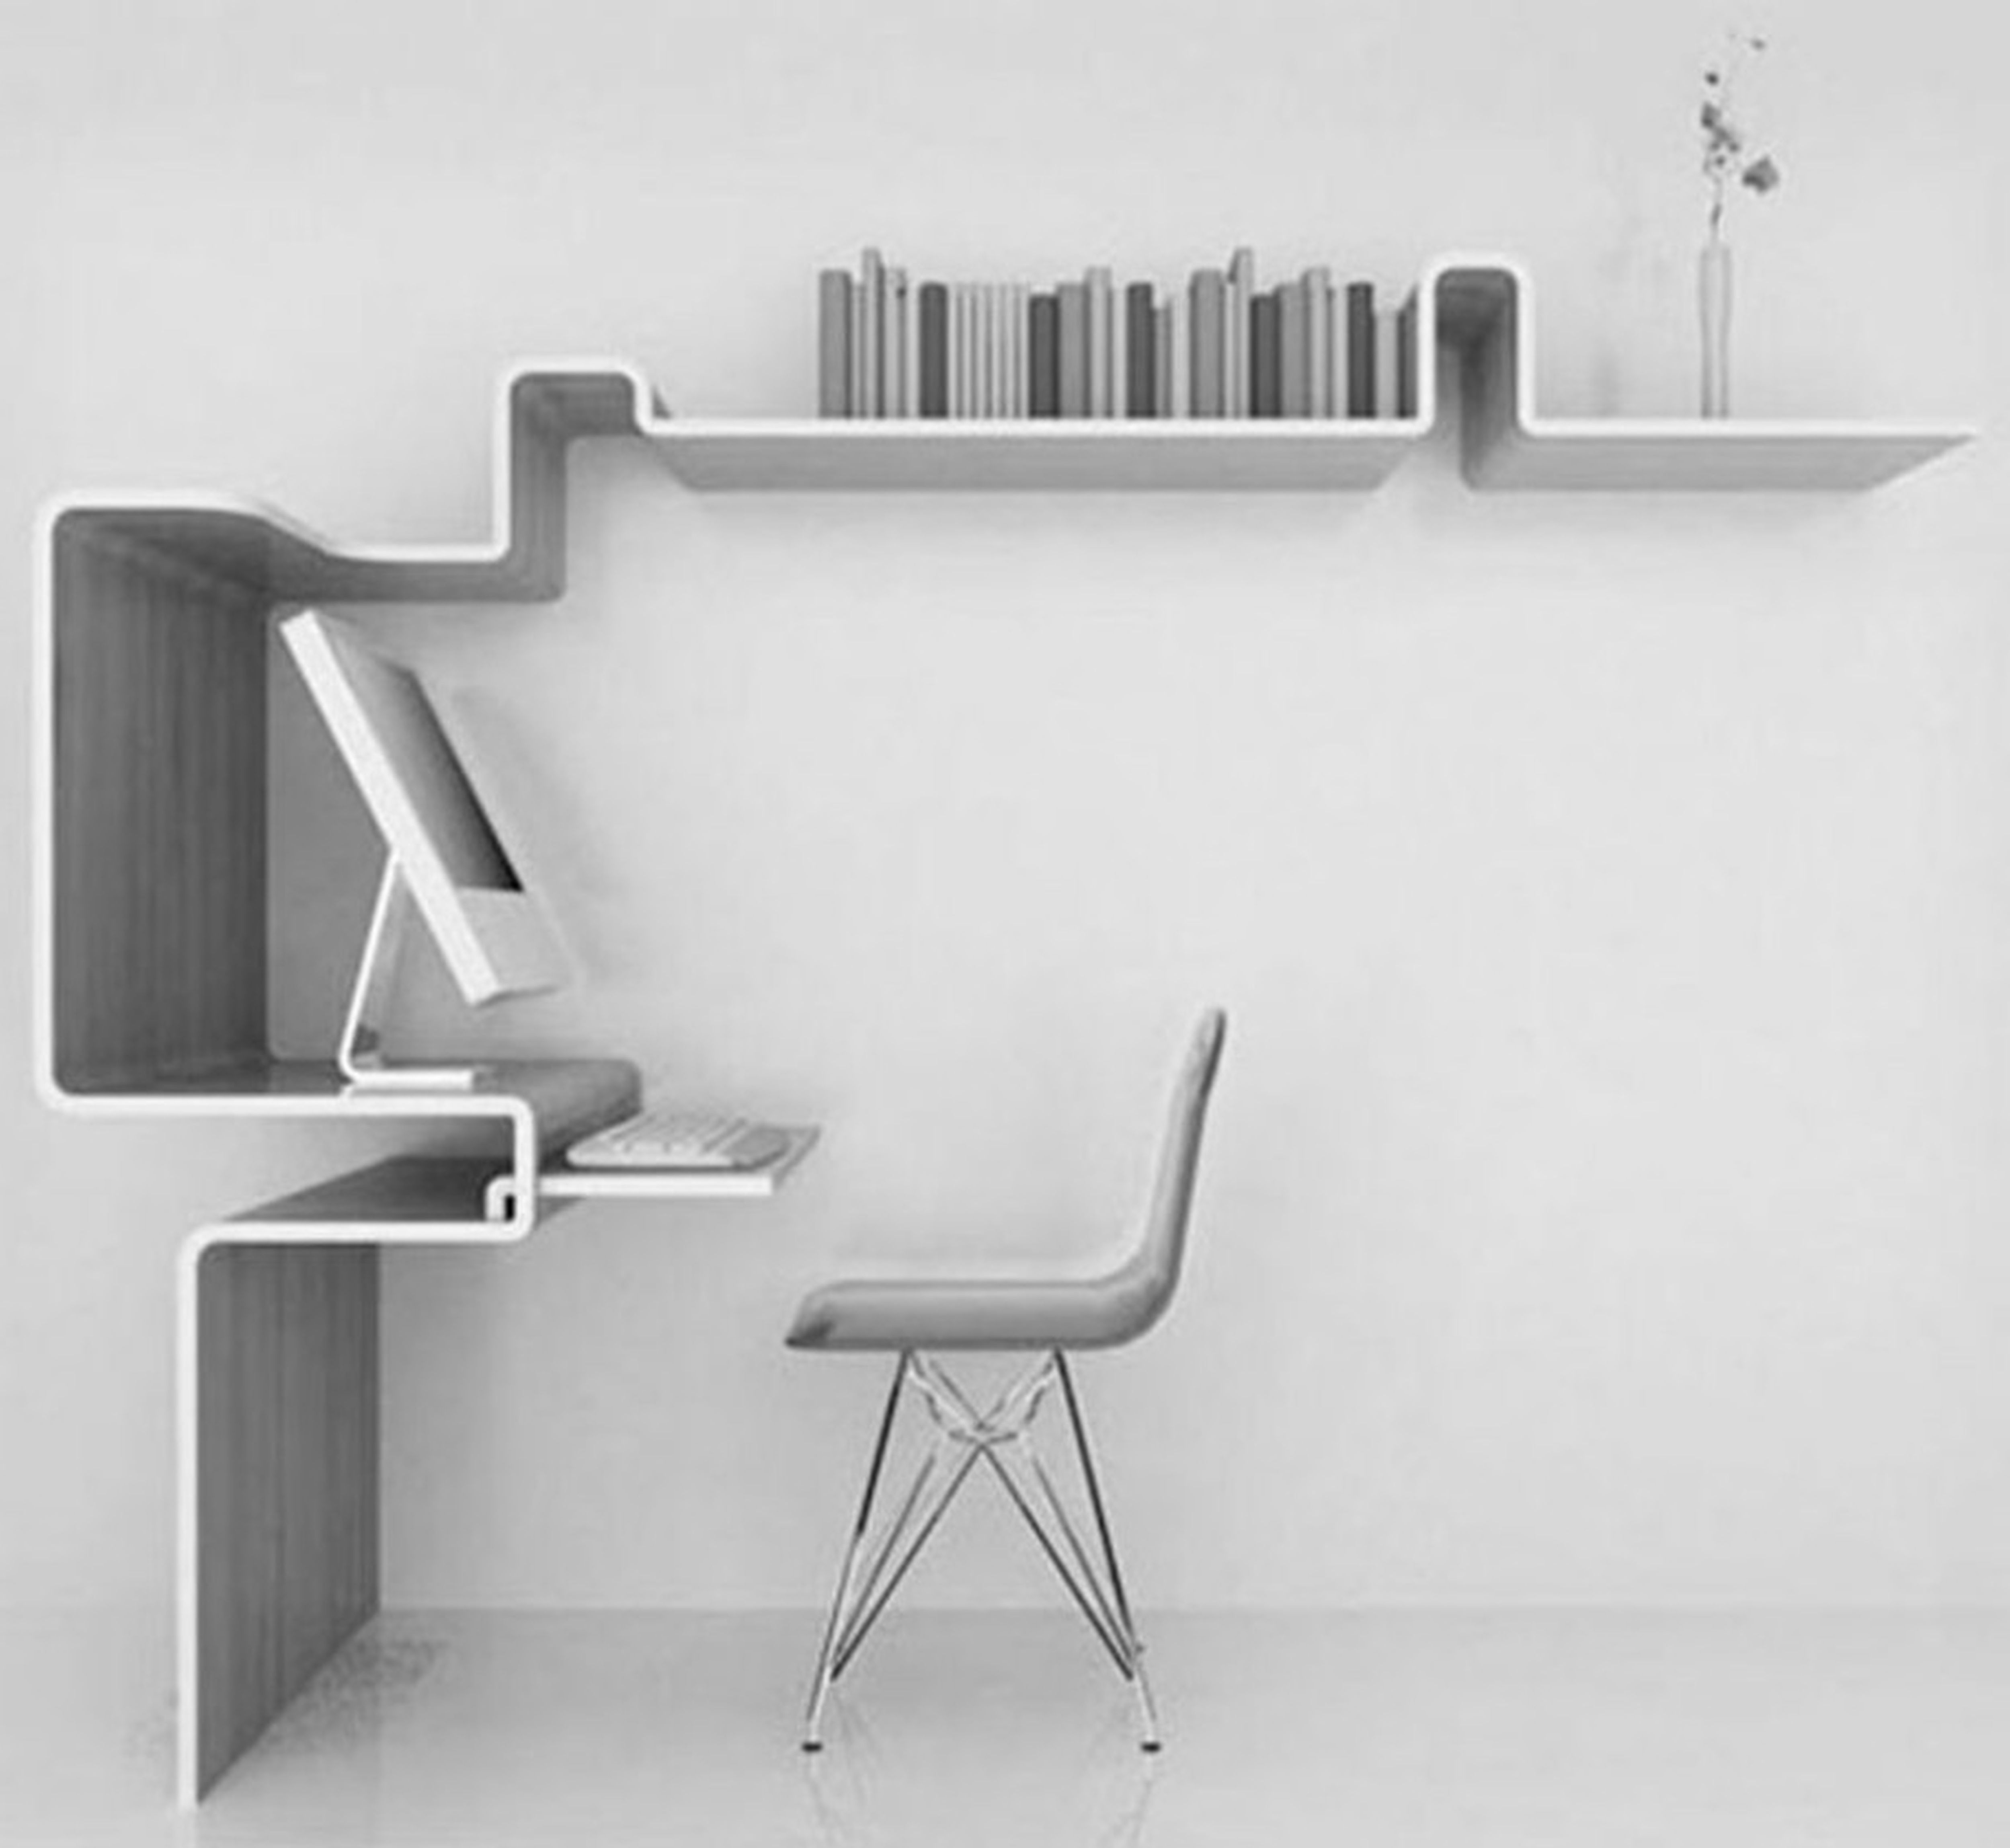 Best Computer Desks Modern Wall Mounted Space Saving Computer Desk Of The  Unique Curved Slim Shaped Bookshelves Ideas And Grey Leather Chair Metal  Leg ...